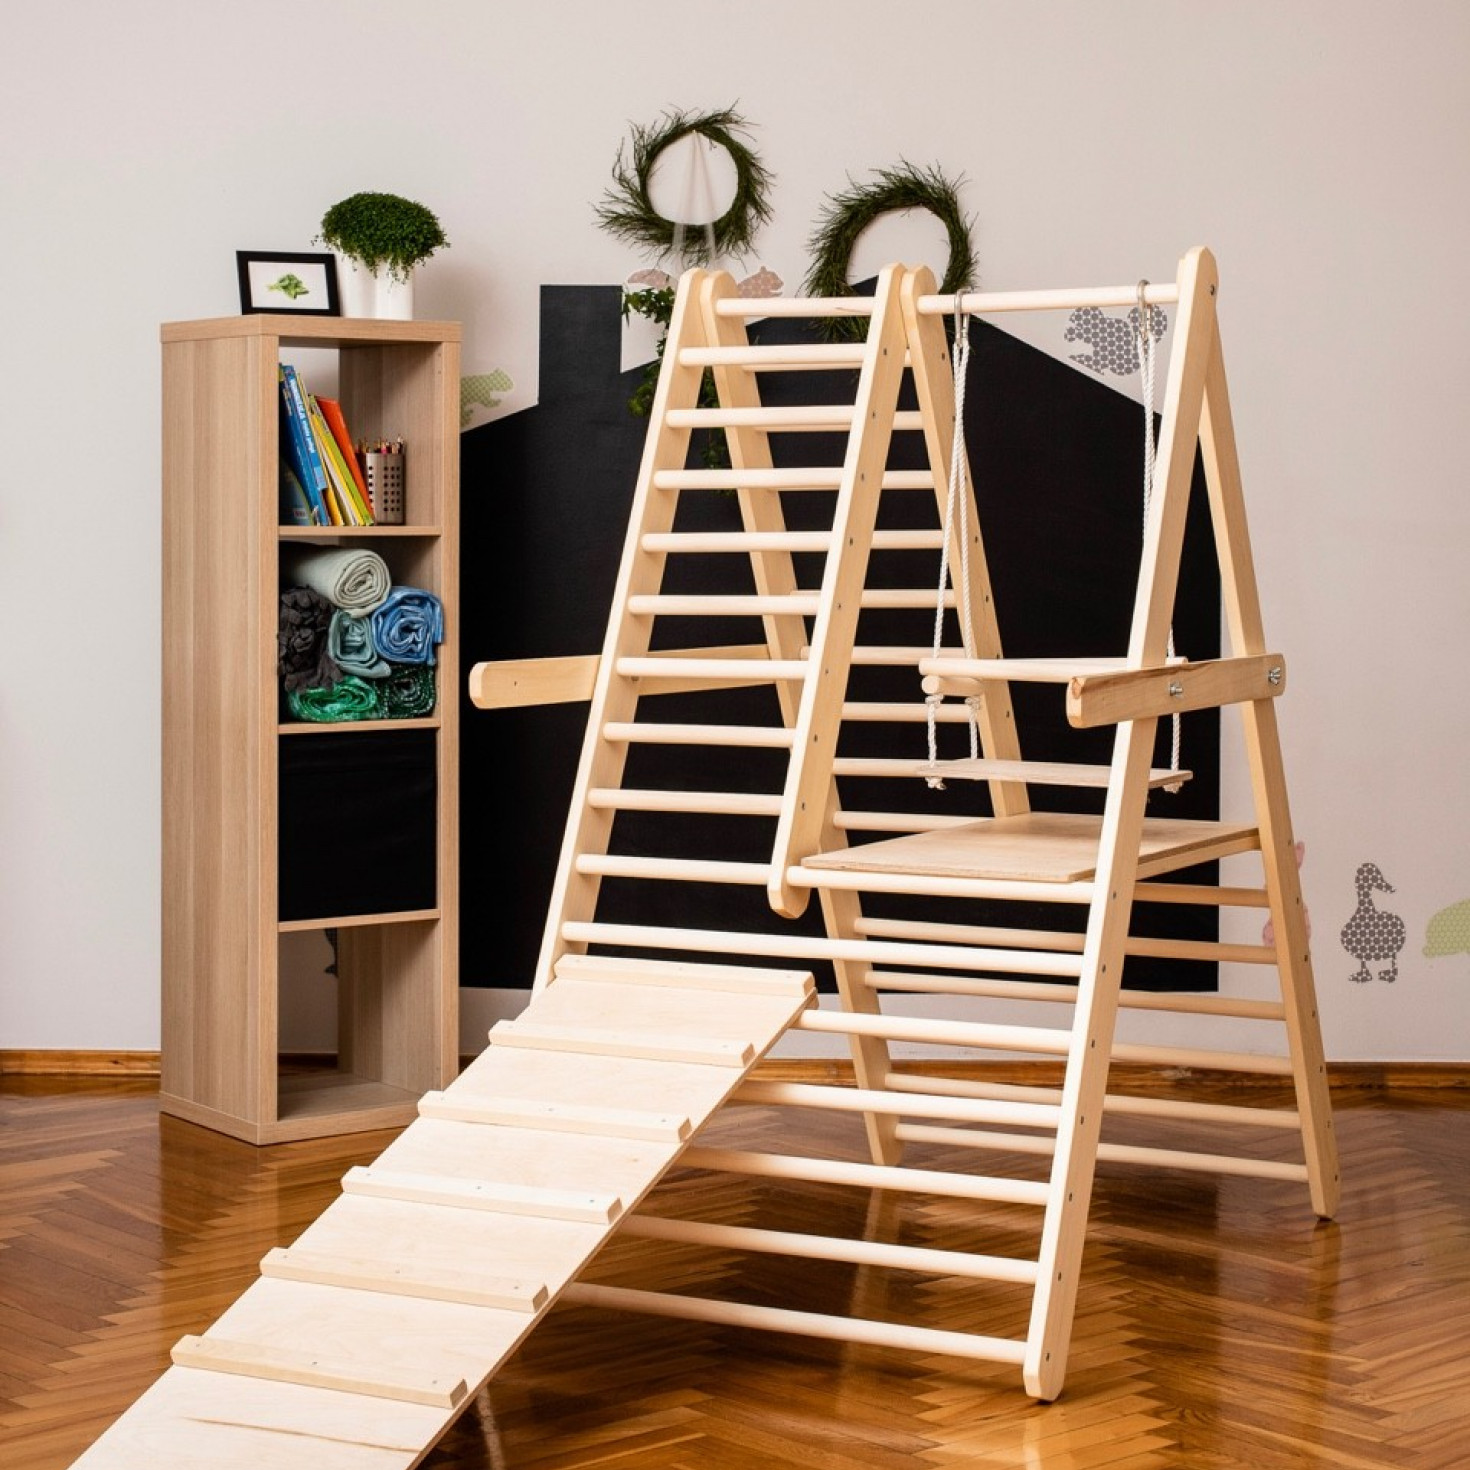 A climbing triangle for toddlers with a slide board